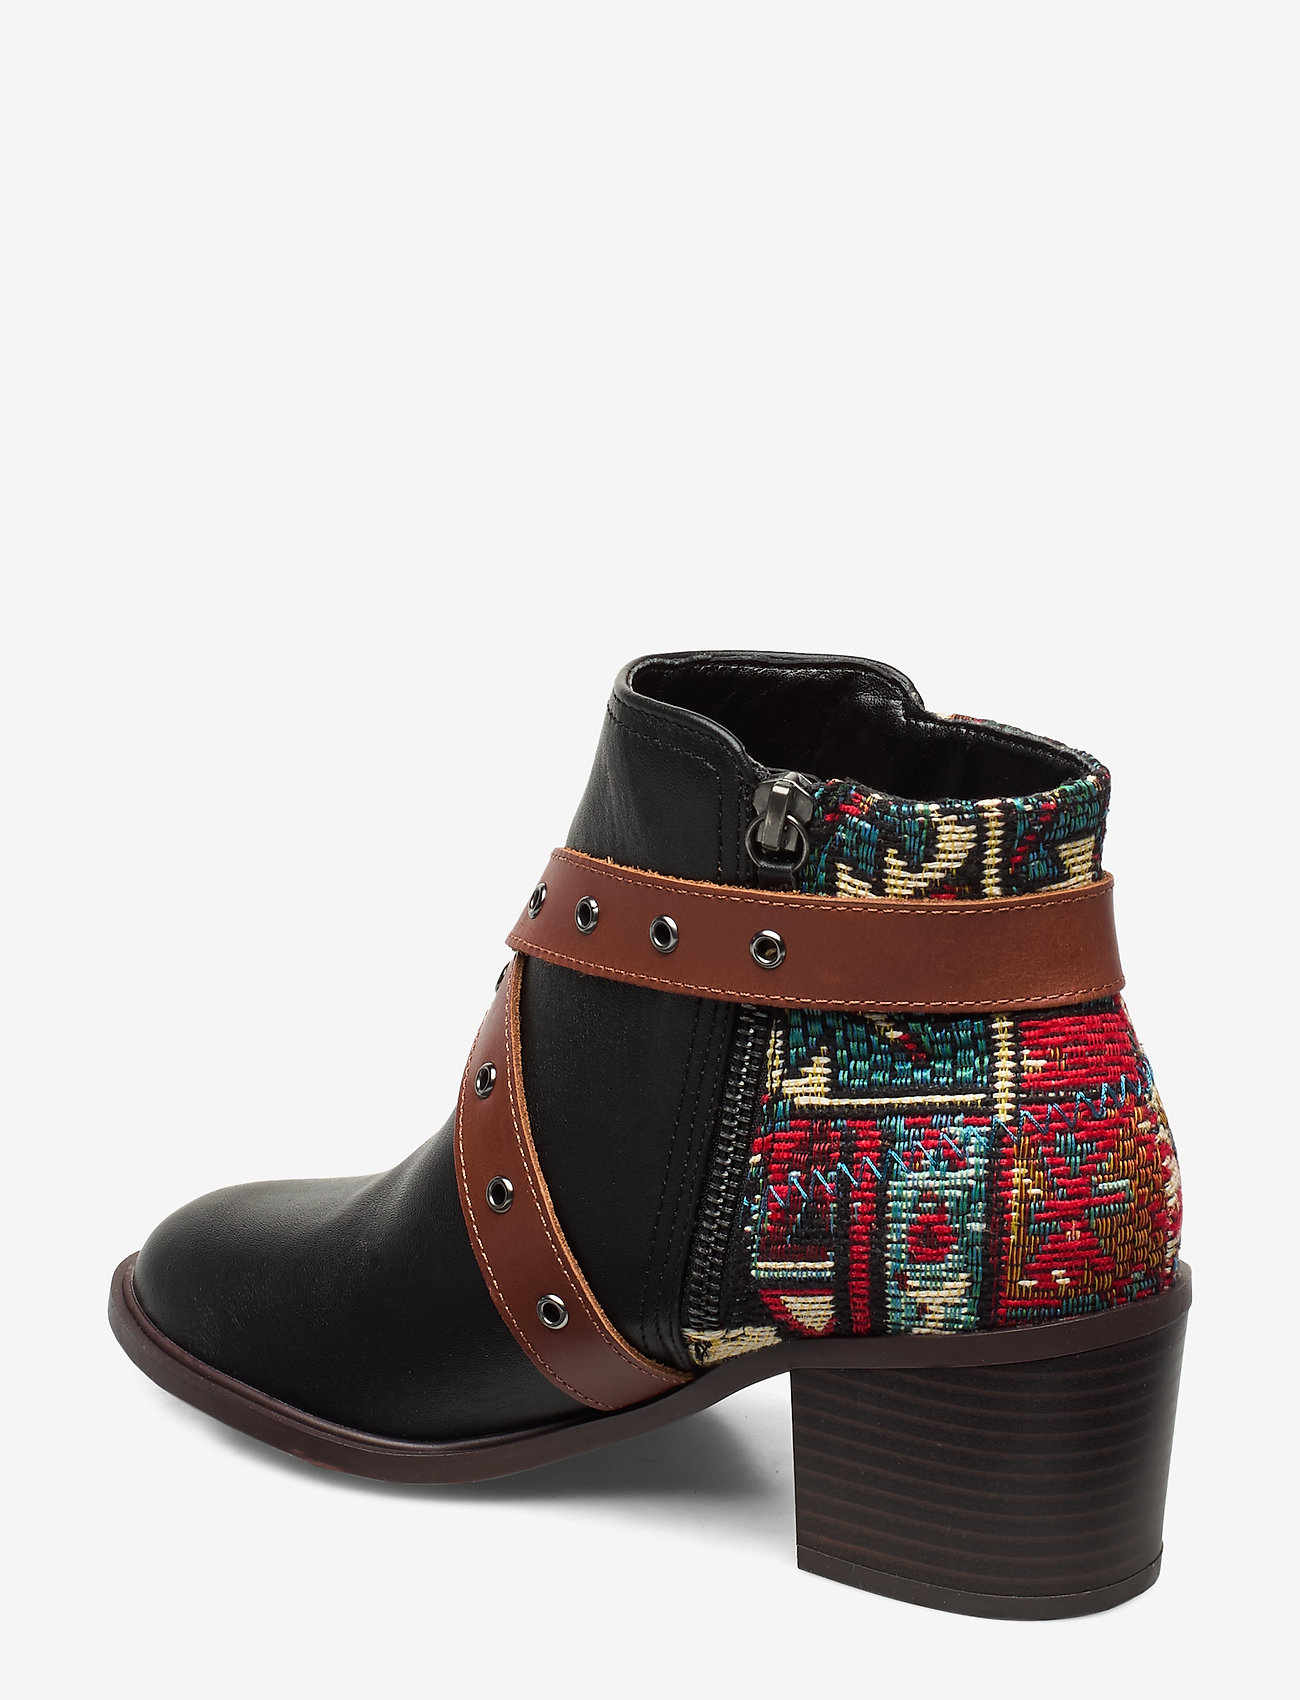 Shoes Alaska Tapestry (Negro) - Desigual Shoes